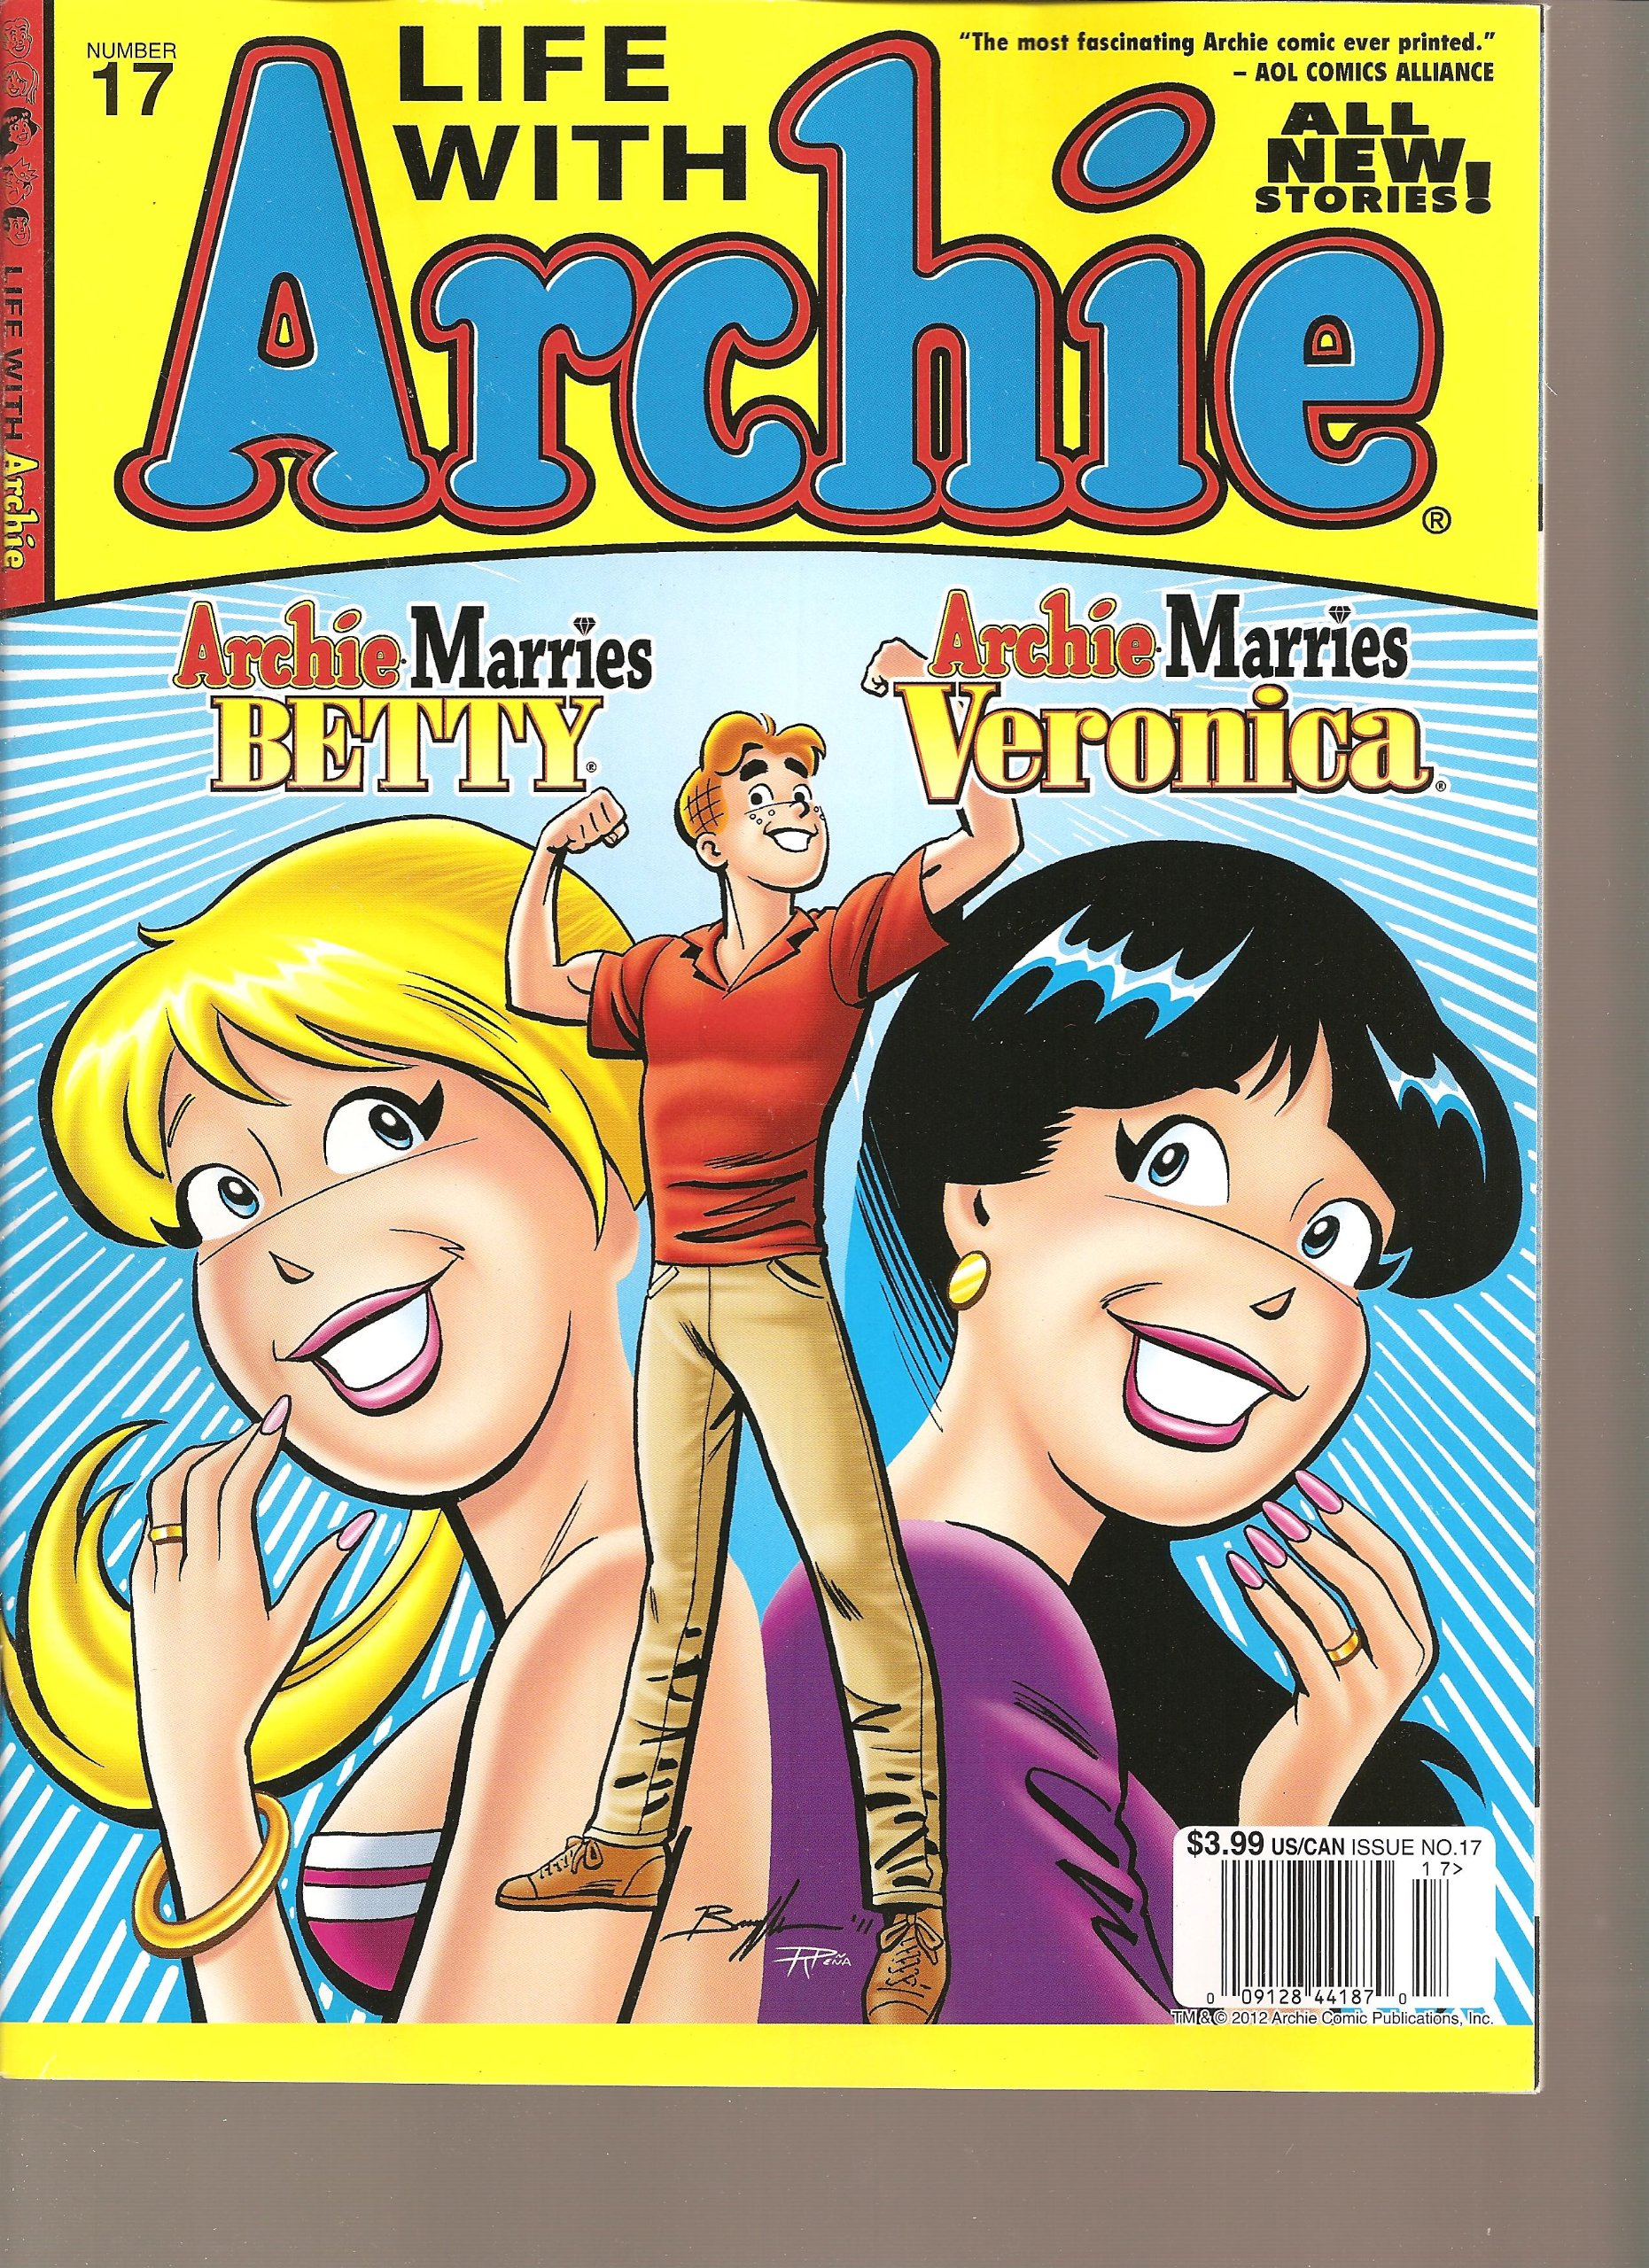 Download Life with Archie Magazine (Archie MArries Betty Archie Marries Veronica, Number 17 2012) ebook